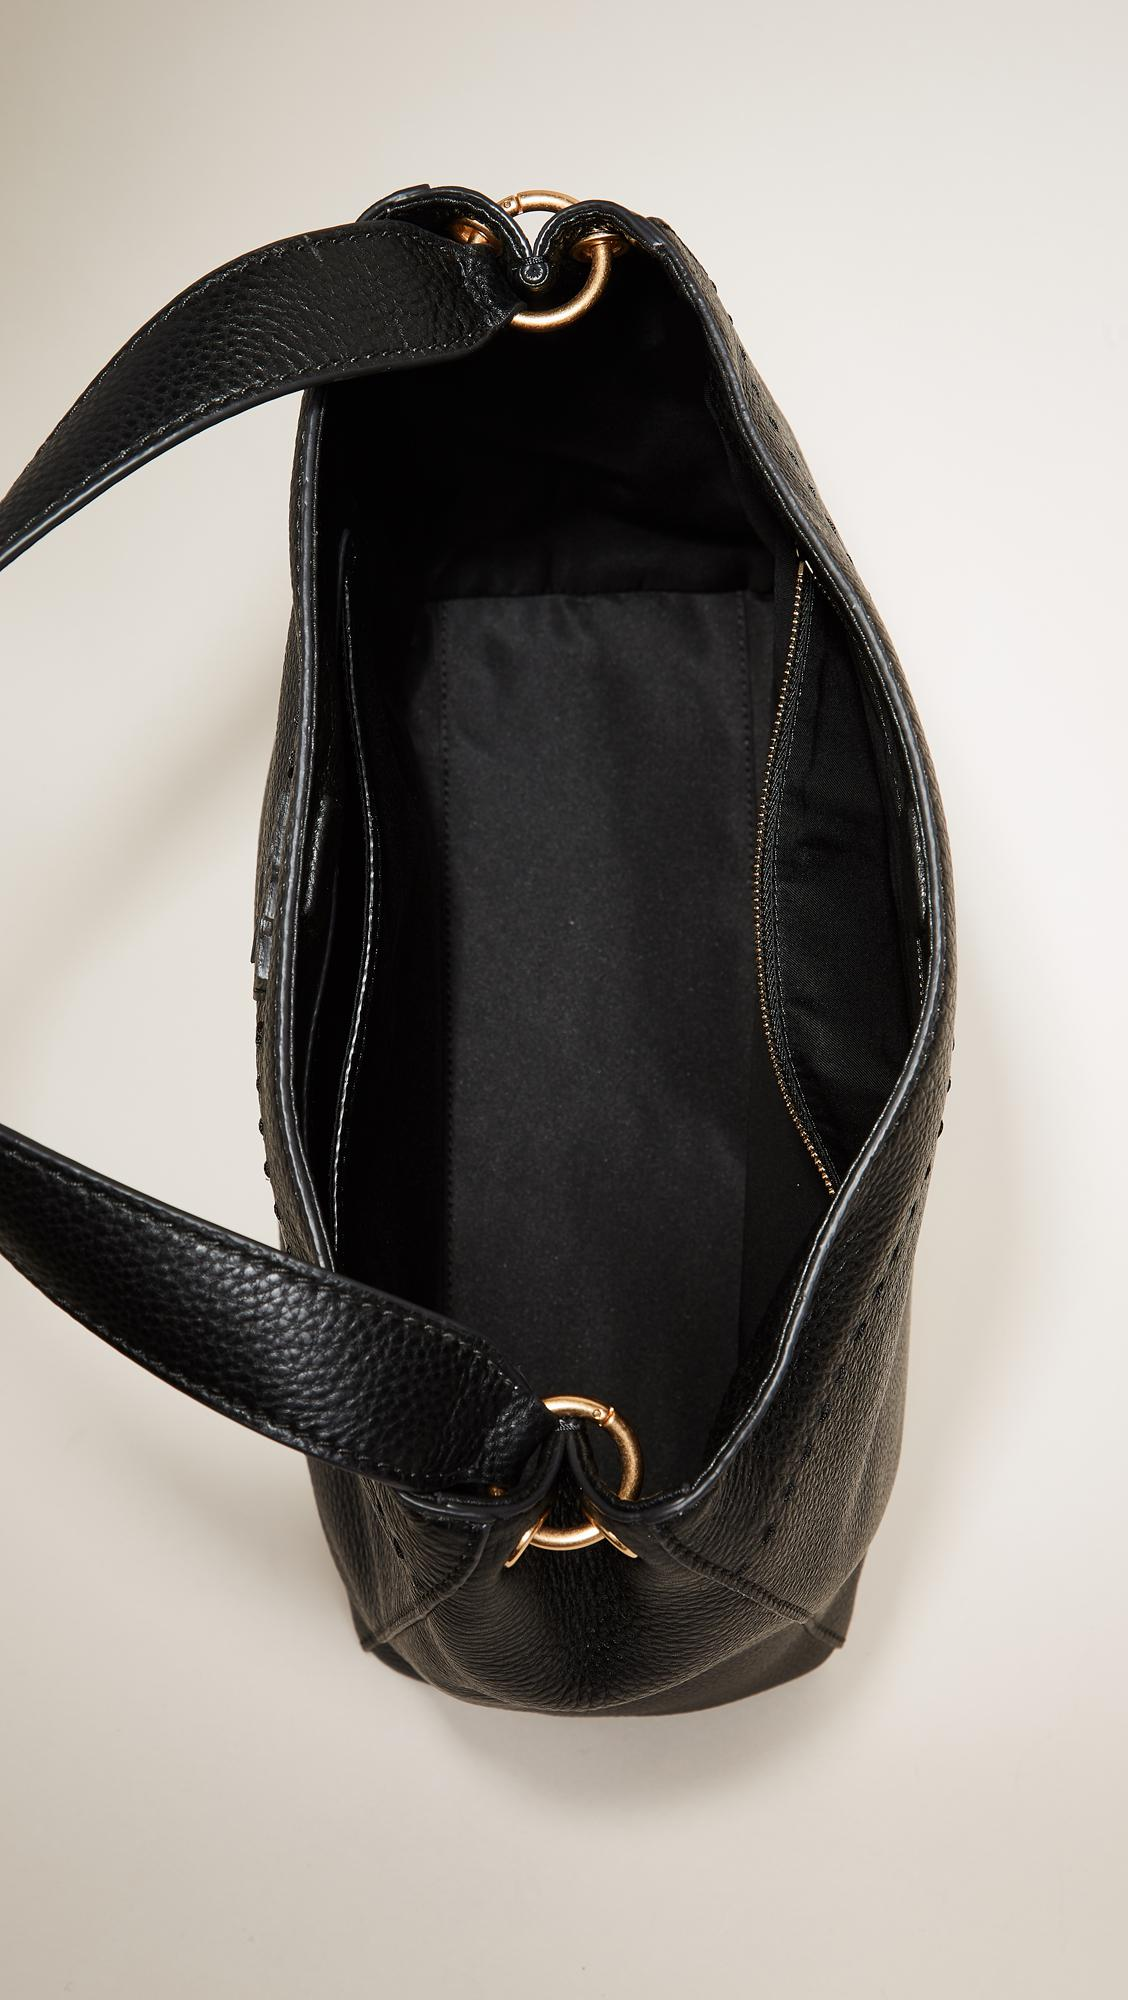 75a224de9a4 Lyst - Tory Burch Mcgraw Hobo Bag in Black